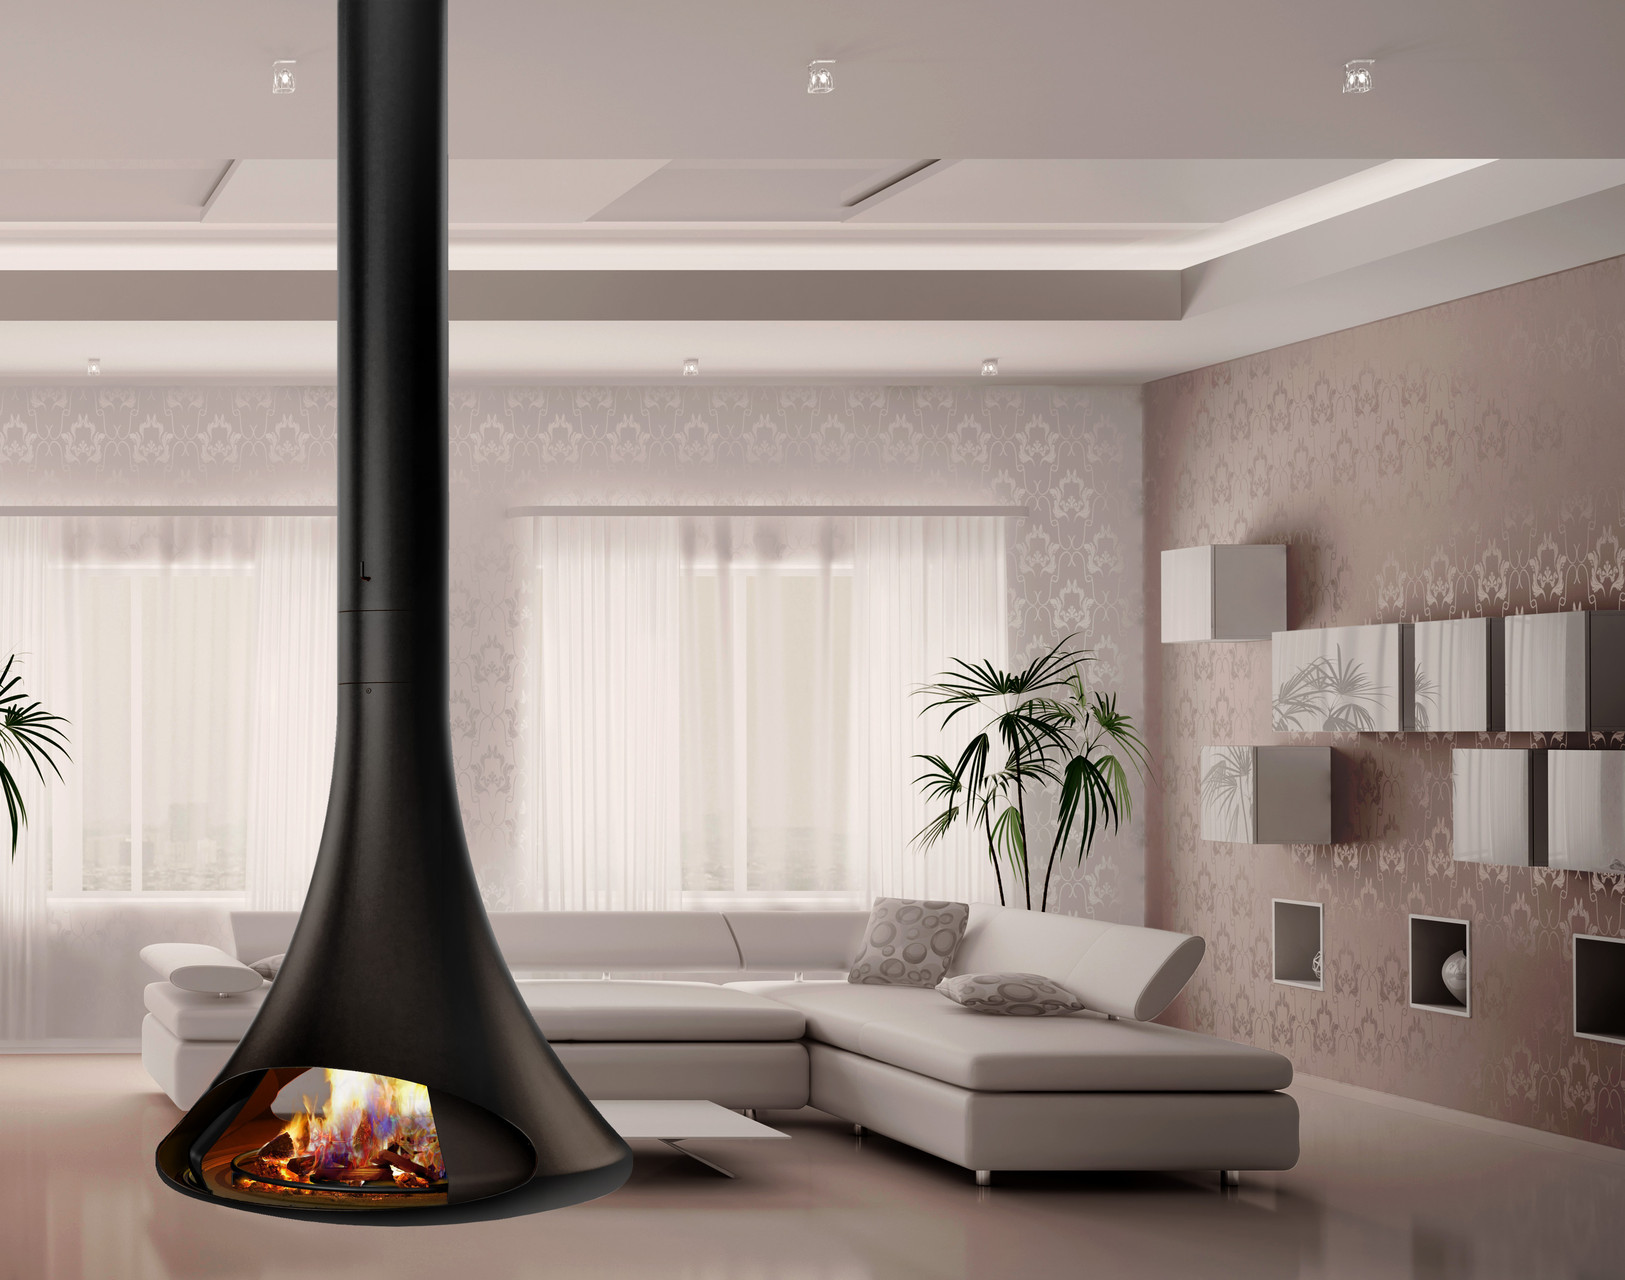 traforart chimeneas barcelona traforart net. Black Bedroom Furniture Sets. Home Design Ideas